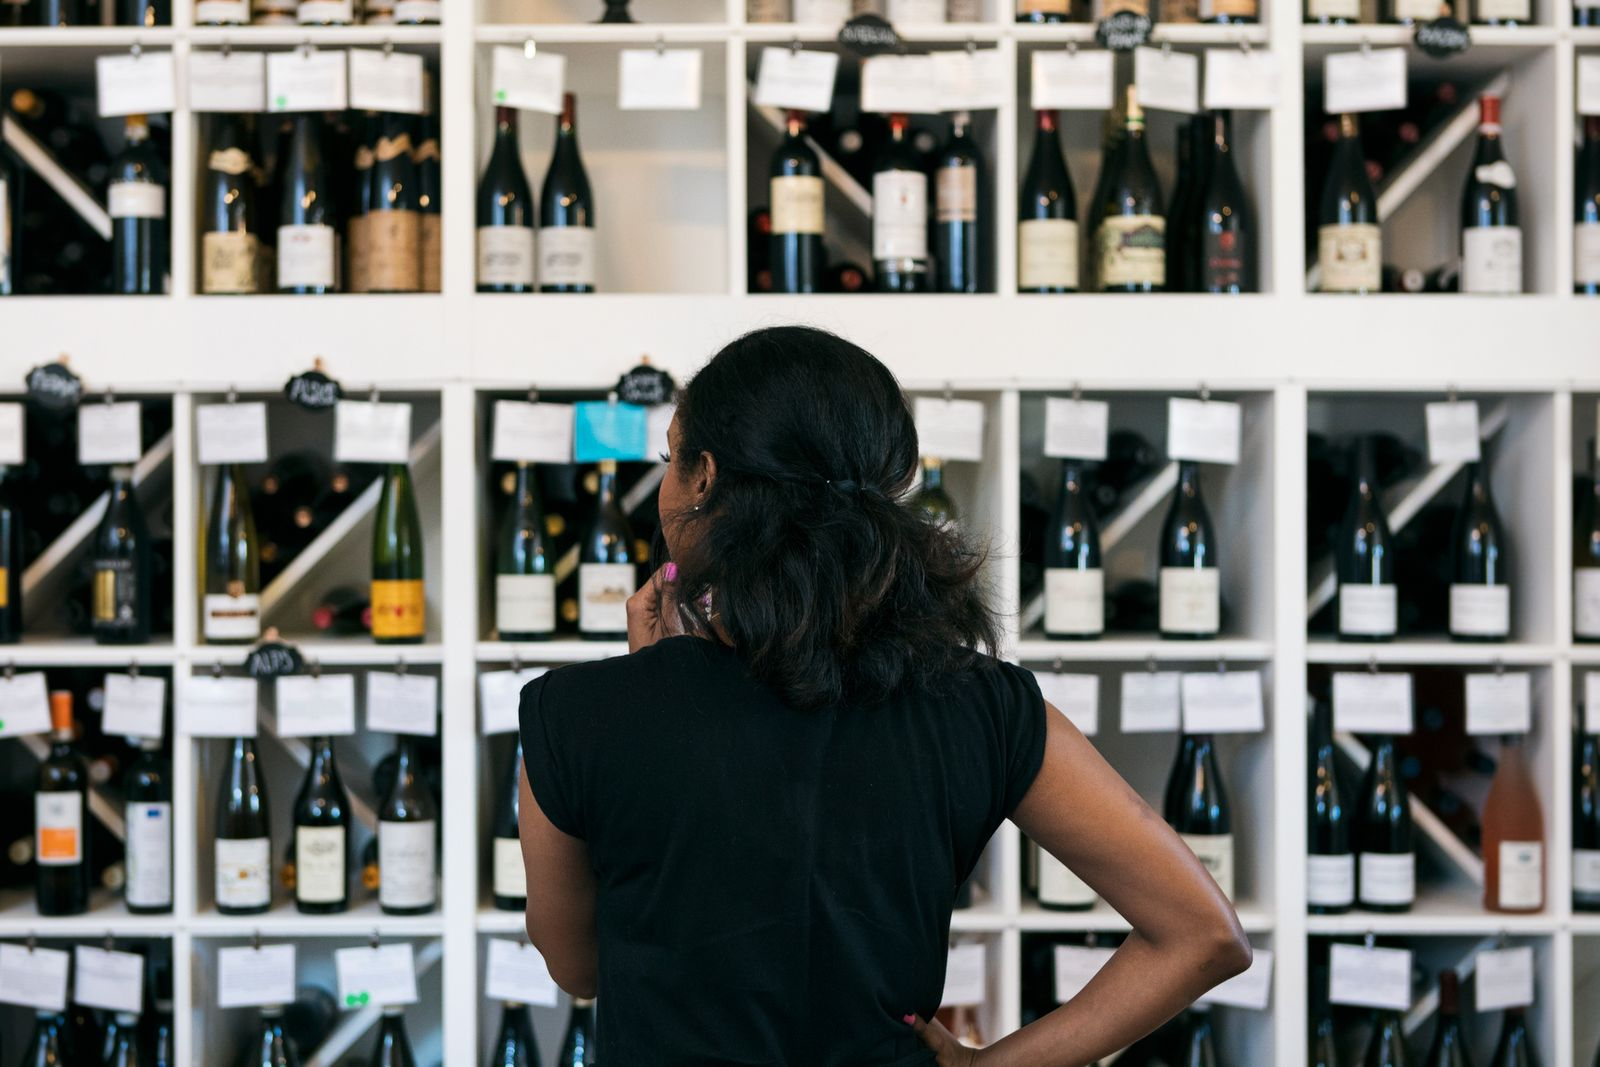 Wine: Customer Confused By So Many Choices In Wine